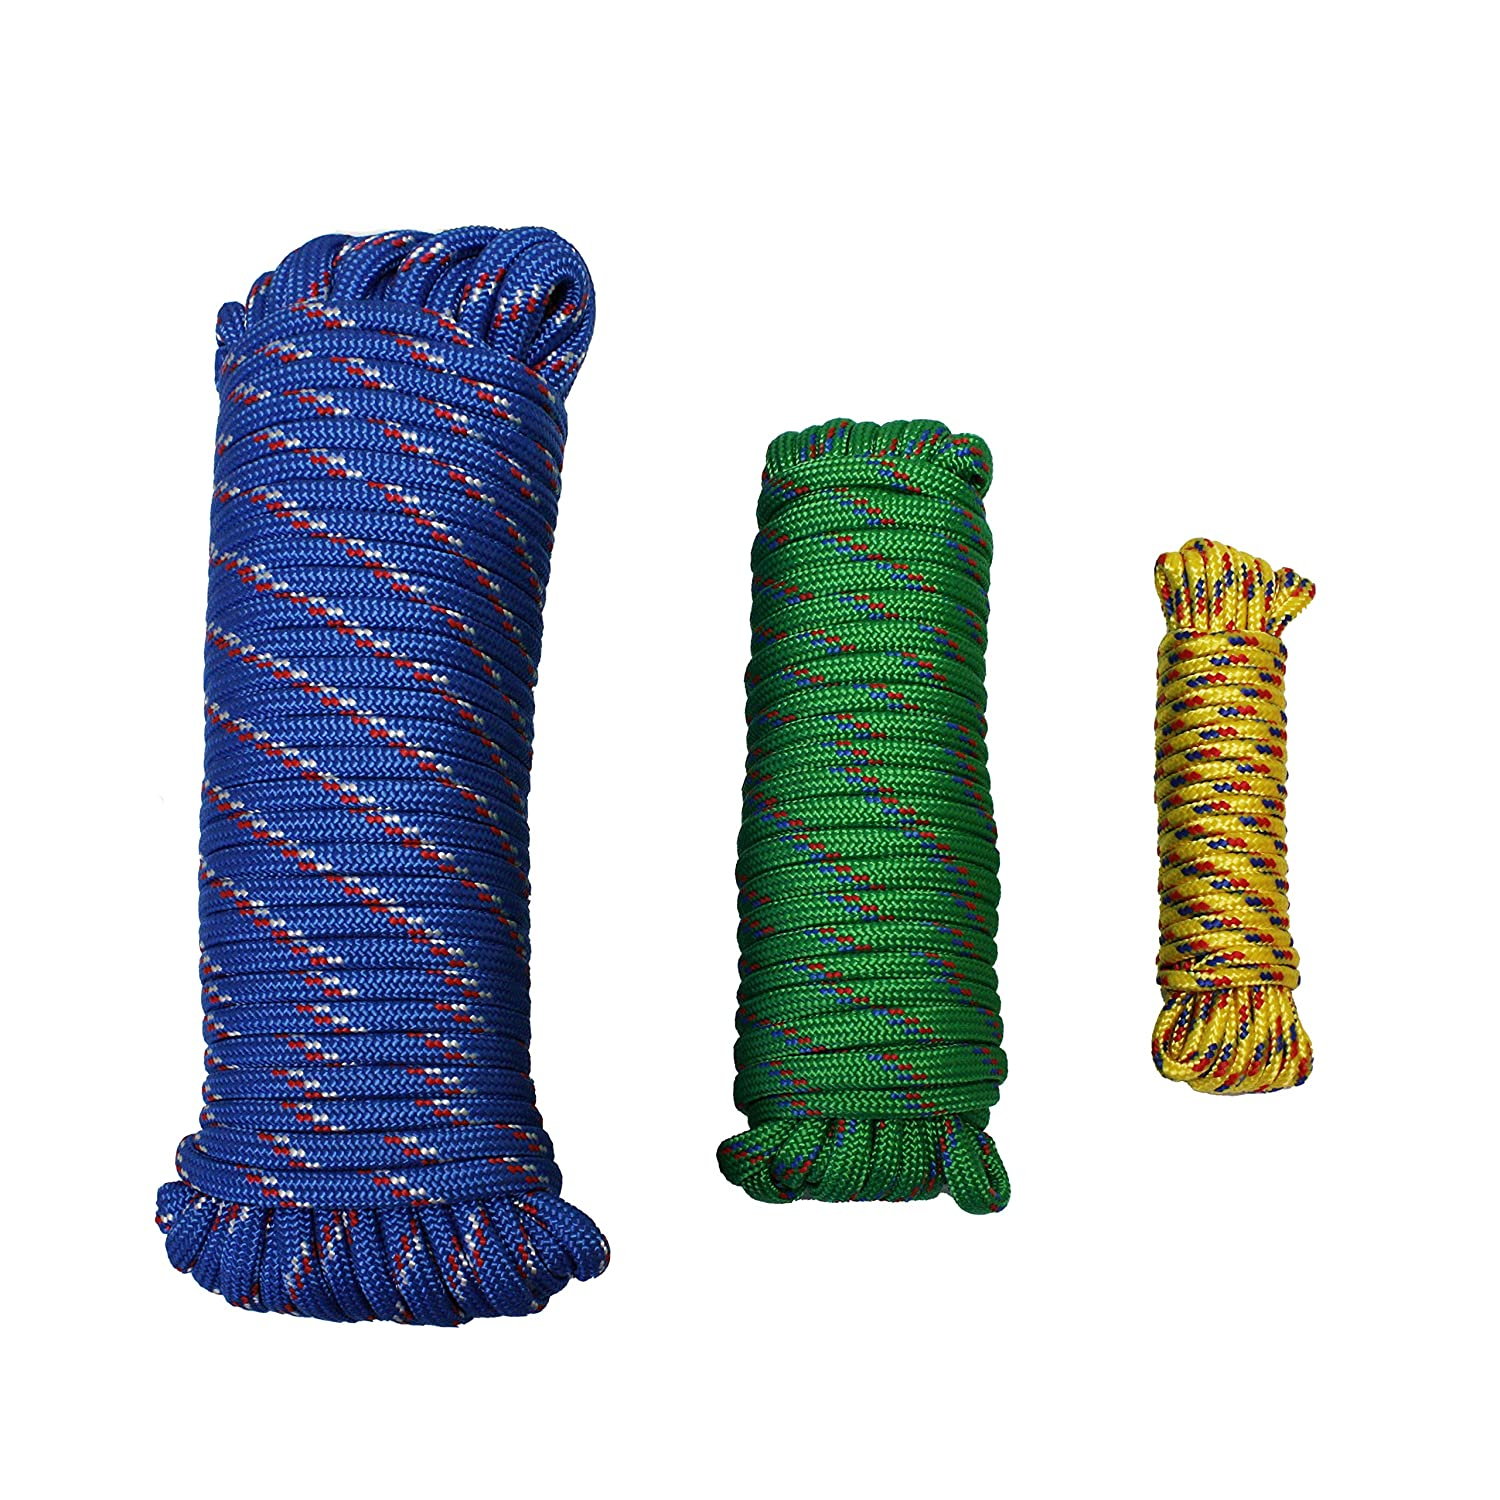 Multicolor MaxxHaul 50229 3-Pack of 1//4 x 25 3//8 x 50 1//2 x 100 Diamond Braided Rope Extra Strength-Sunlight and Weather Resistant